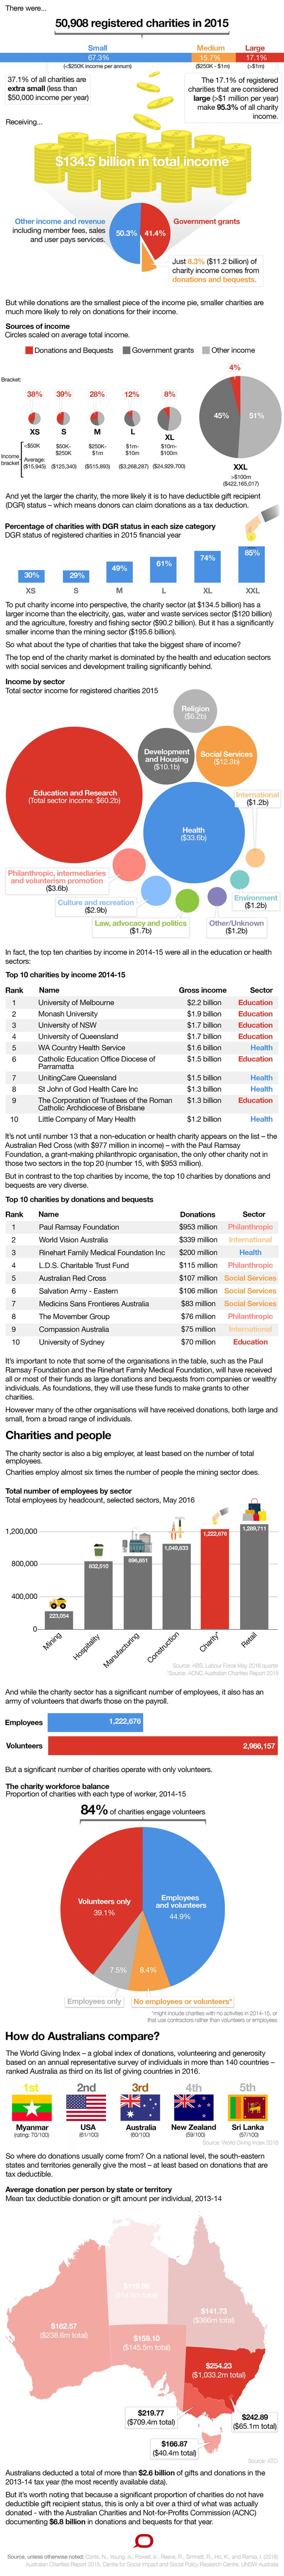 Infographic: a snapshot of charities and giving in Australia